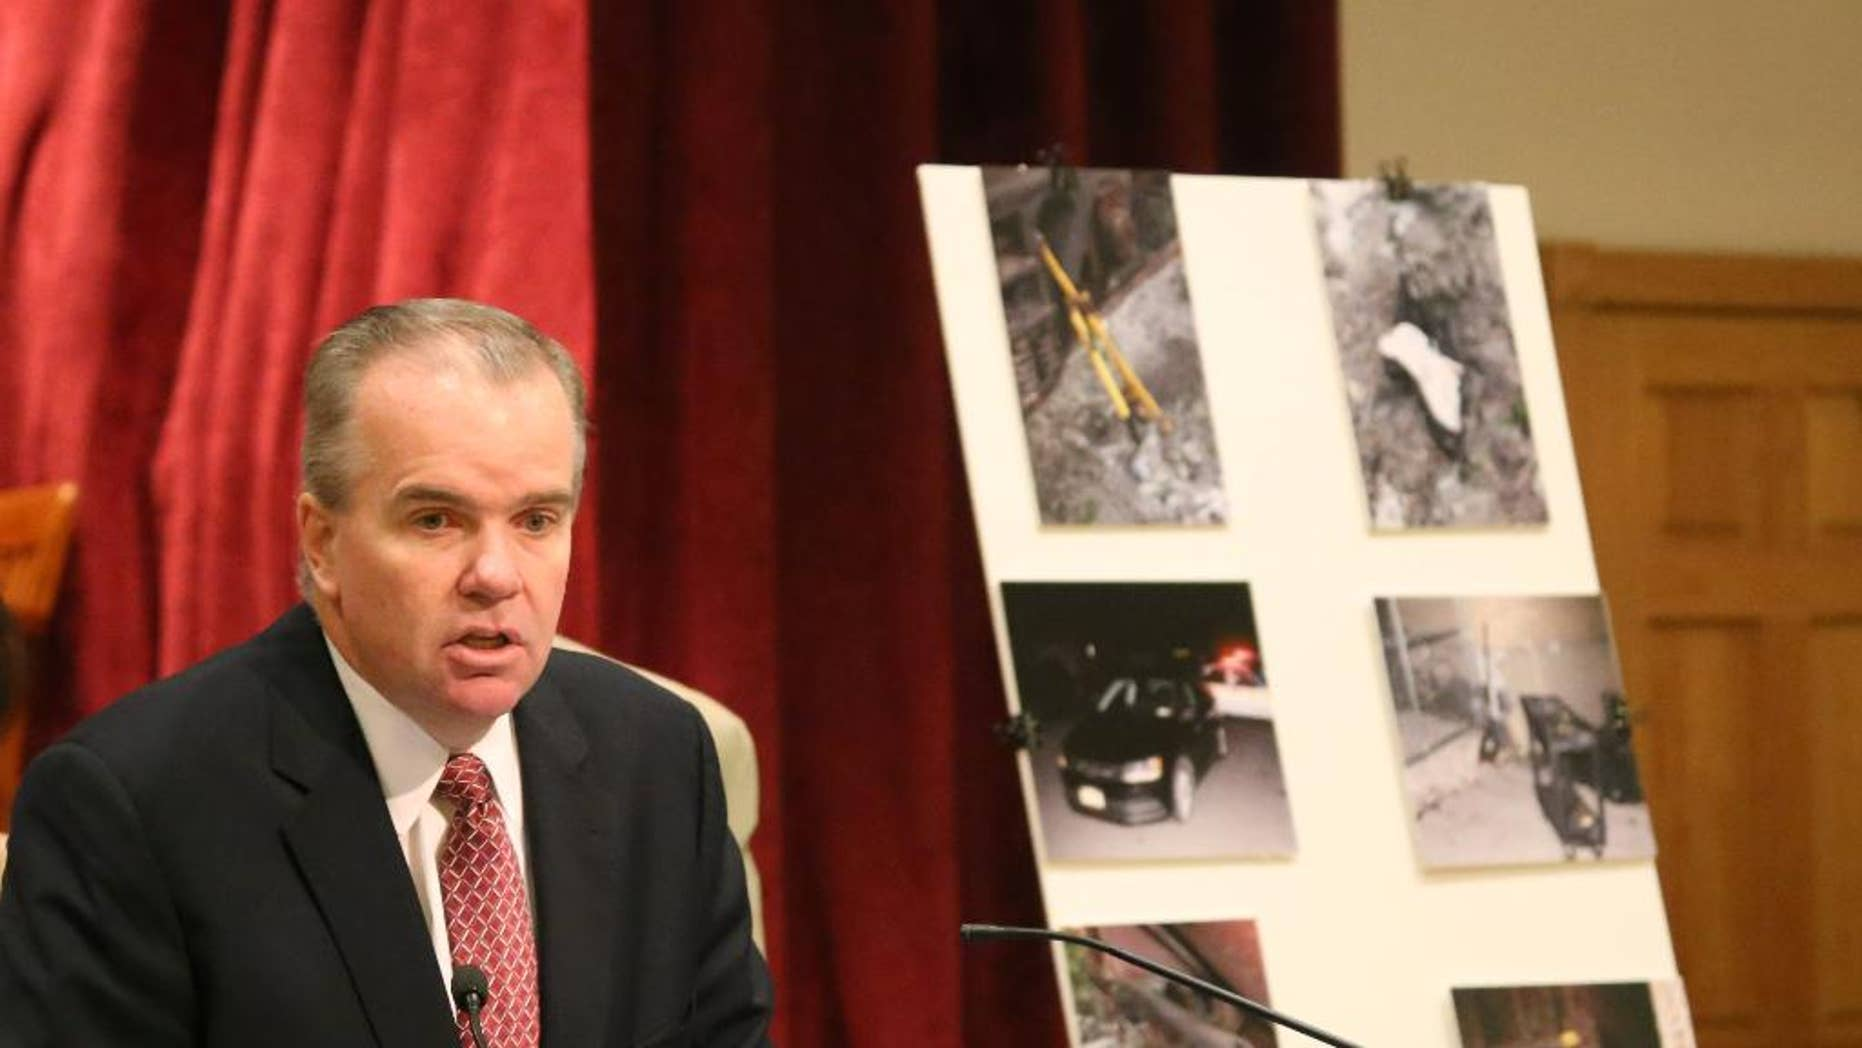 Acting Nassau County Police Commissioner Thomas Krumpter speaks with reporters on Aug. 27, 2015 in Mineola, N.Y., as he stands in front of a board showing crime scene photos of a botched burglary at an armored car company in Hicksville, N.Y. Authorities say a group of sophisticated burglars penetrated a vault of a Long Island armored car company and stole $1.8 million on Aug. 16, 2015, but were foiled by an alert police officer. (AP Photo/Mike Balsamo)